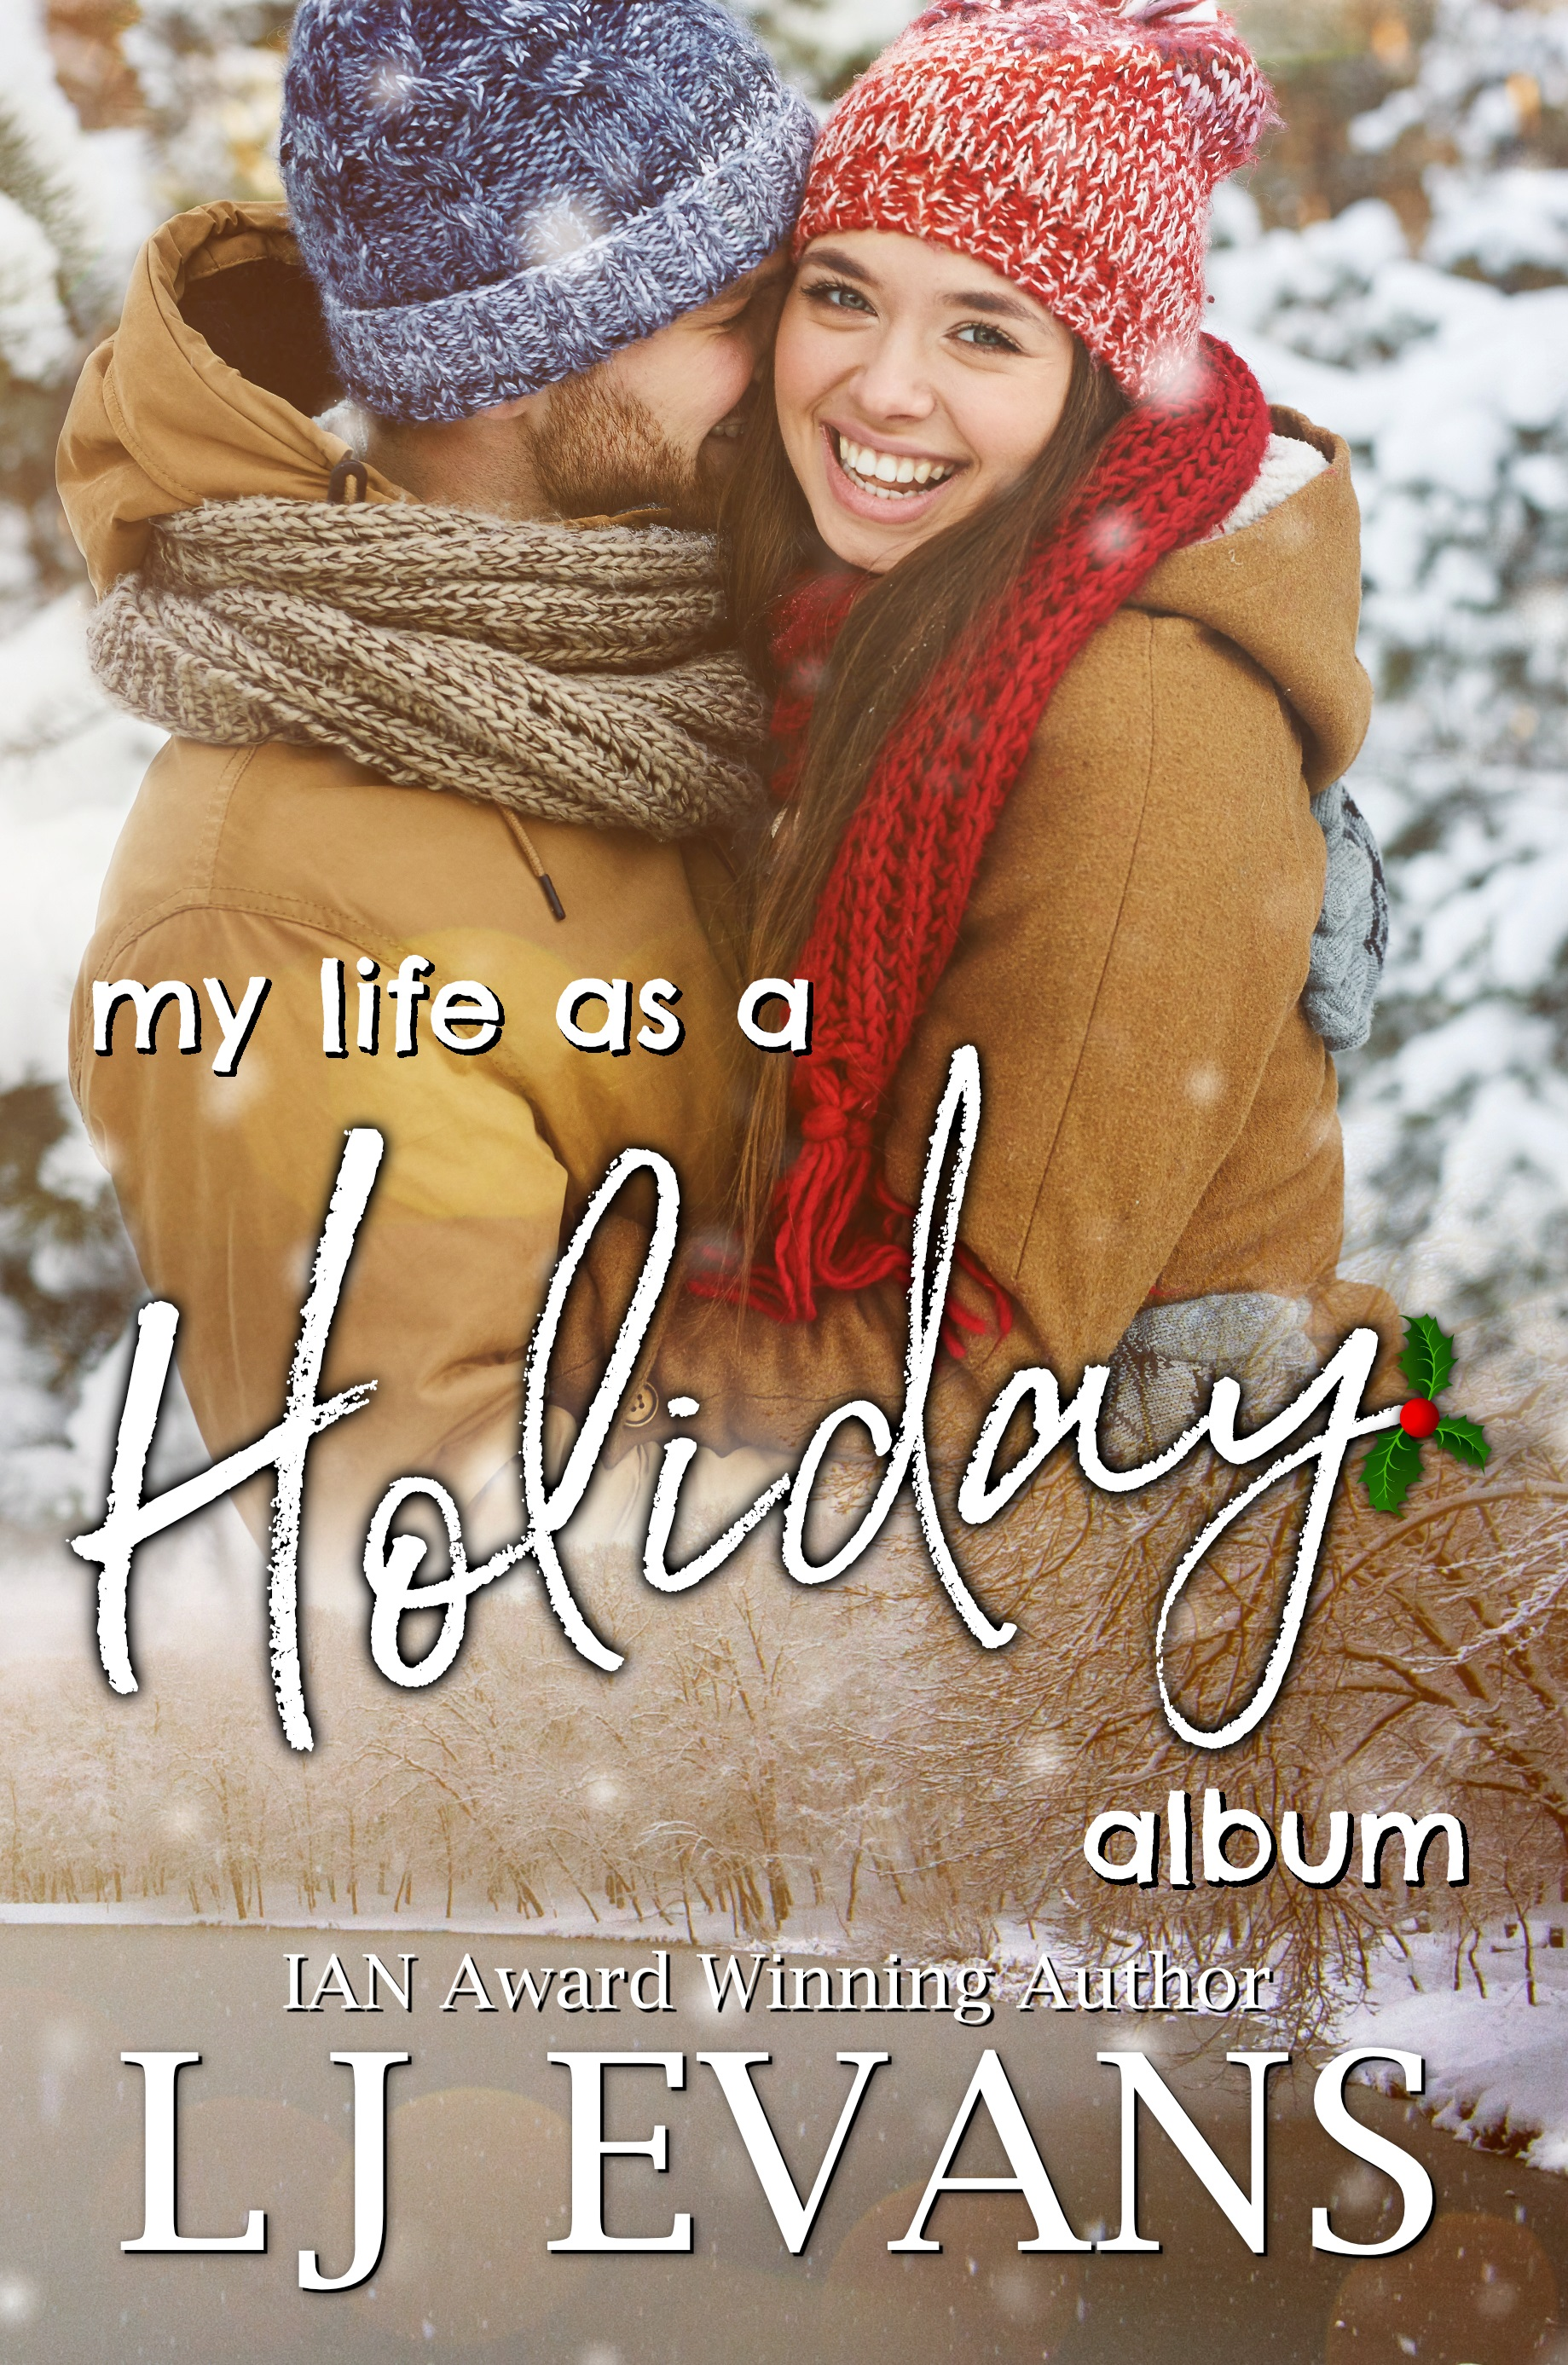 Holiday Album_ebook